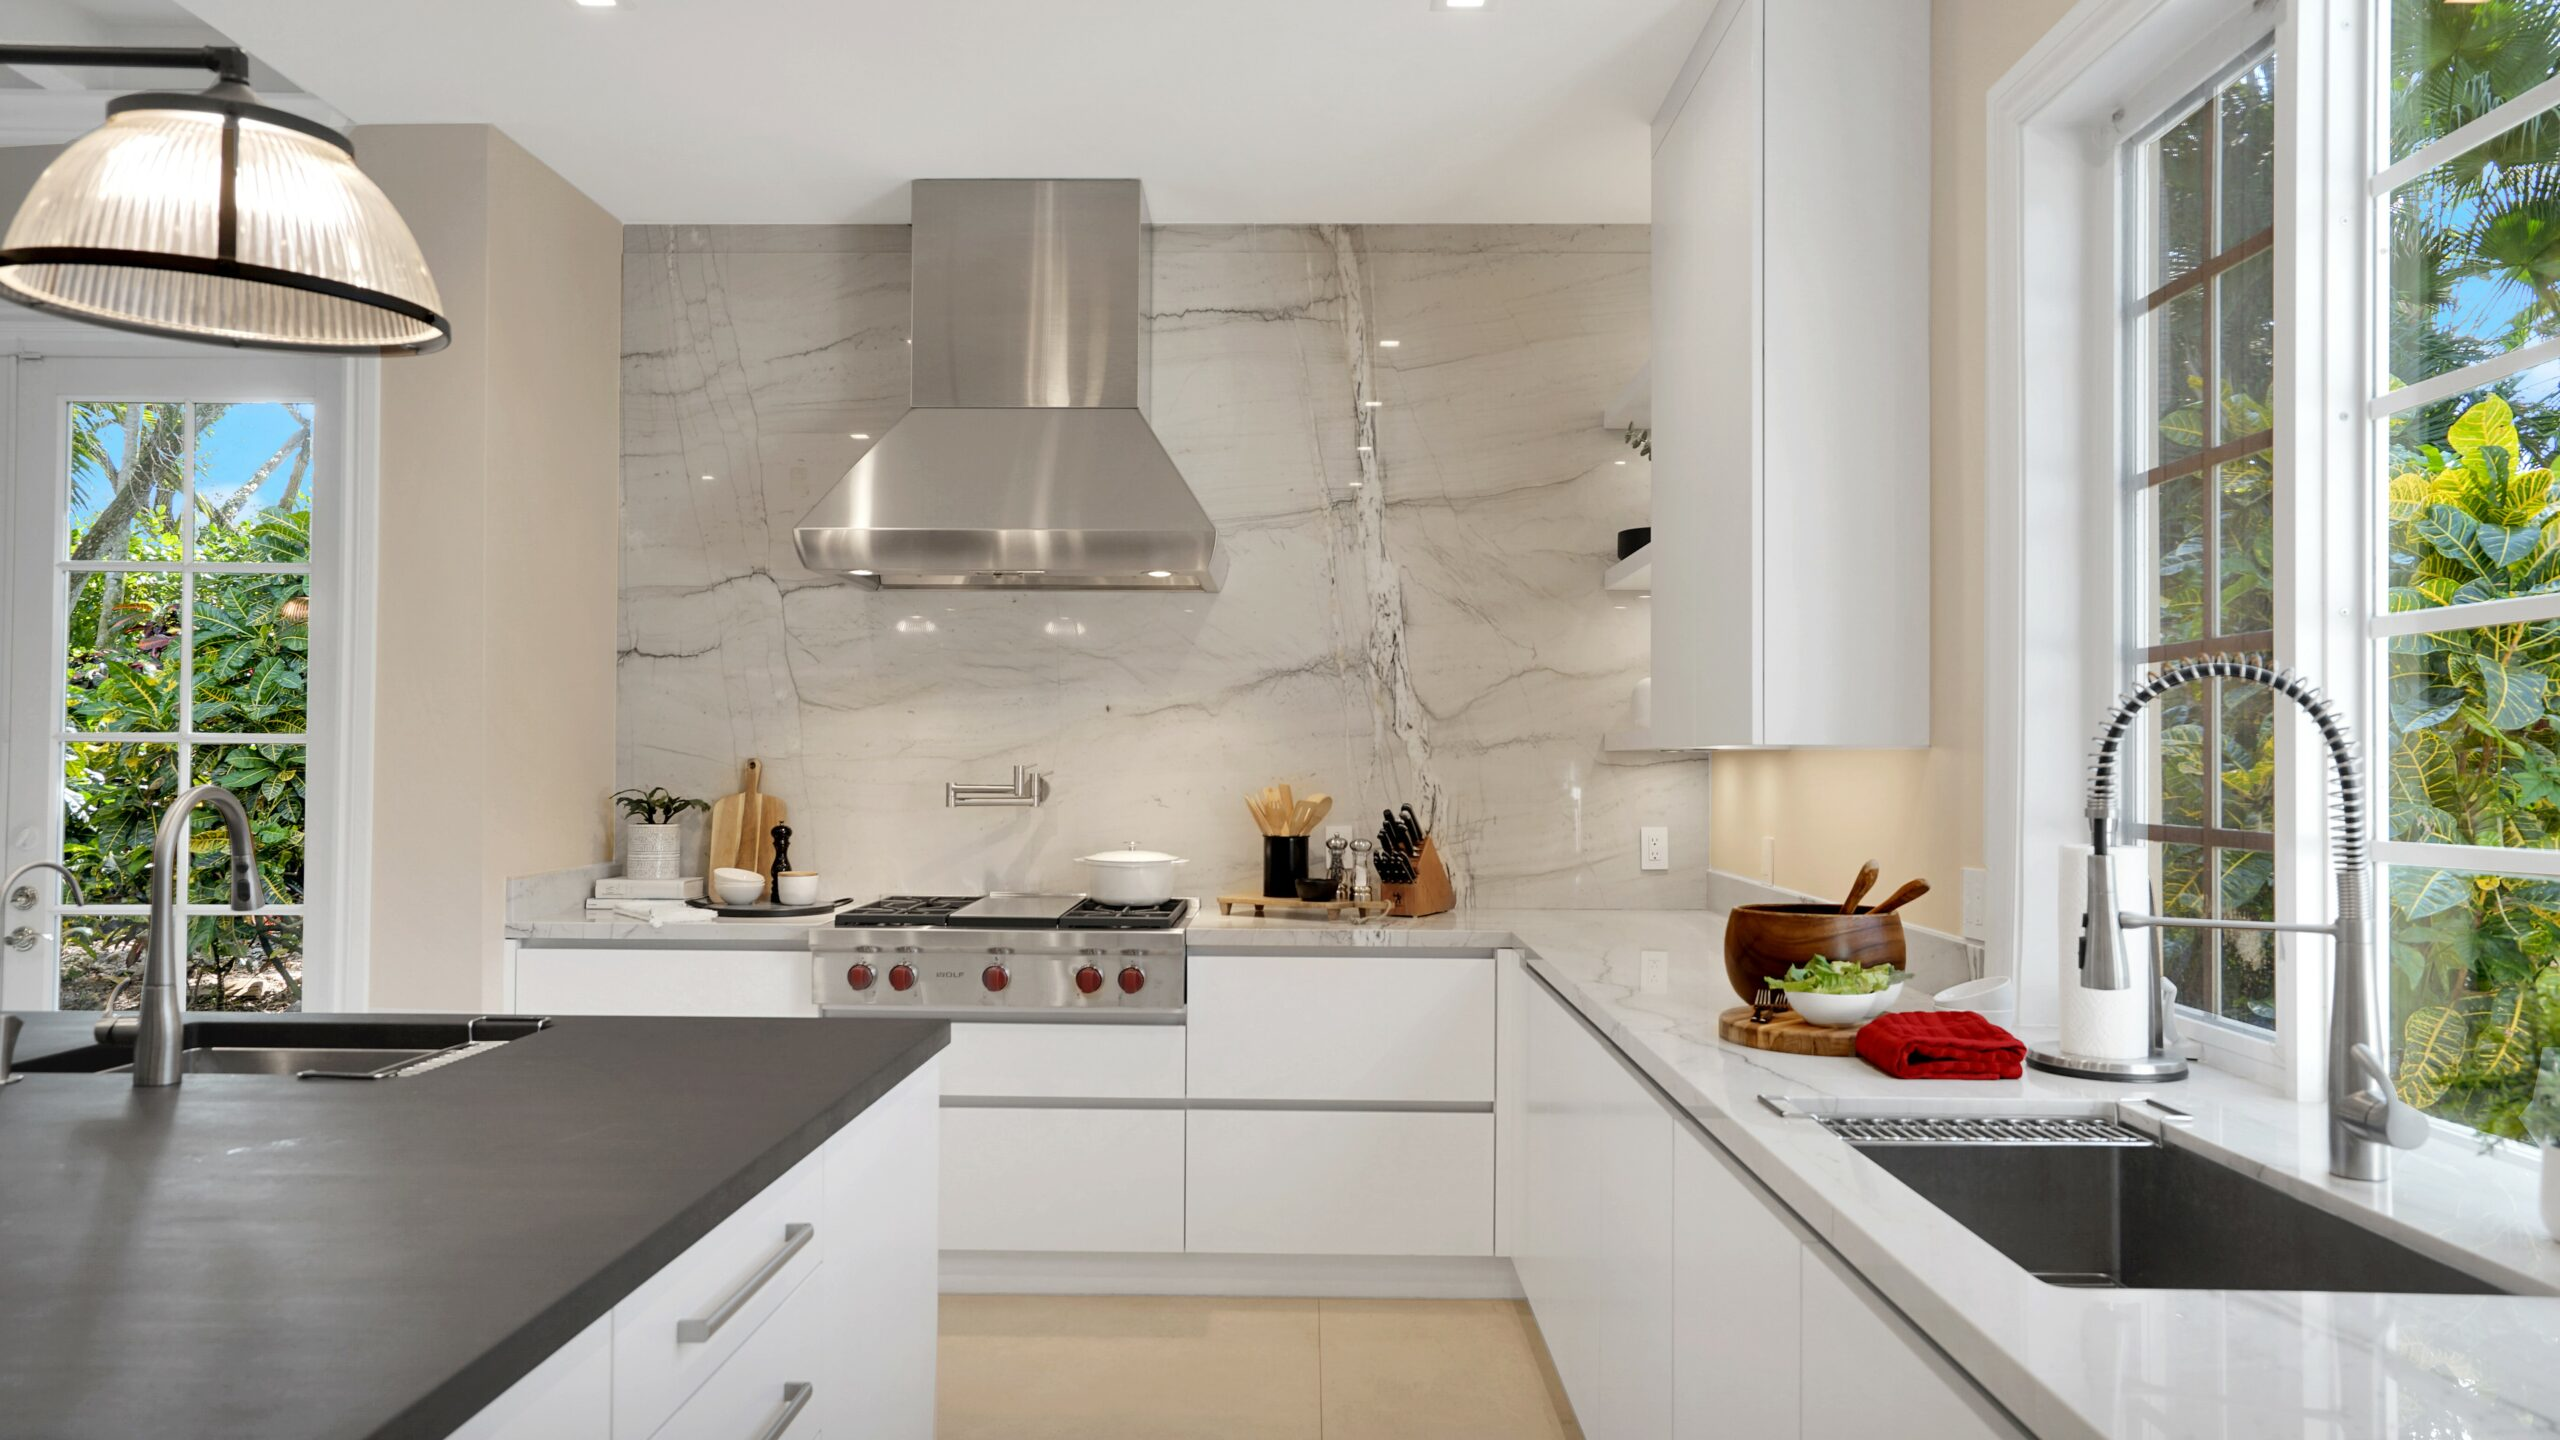 Kitchen Cabinets in Pinecrest, Palmetto Bay, Coral Gables, Ocean Reef, Miami, and Key Largo